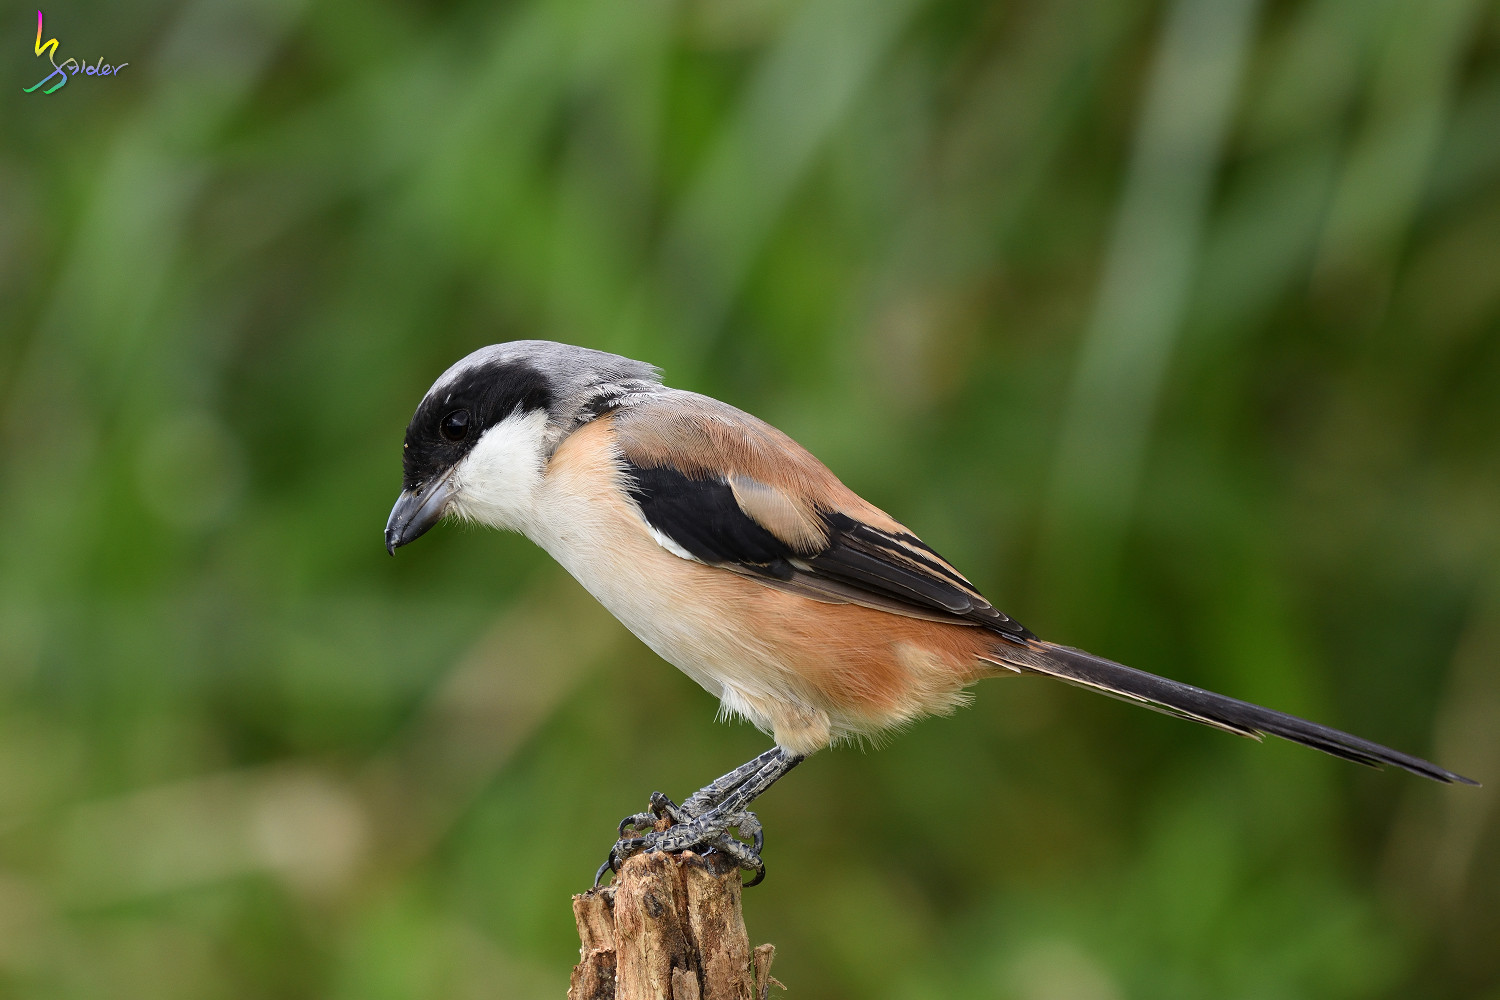 Long-tailed_Shrike_0889